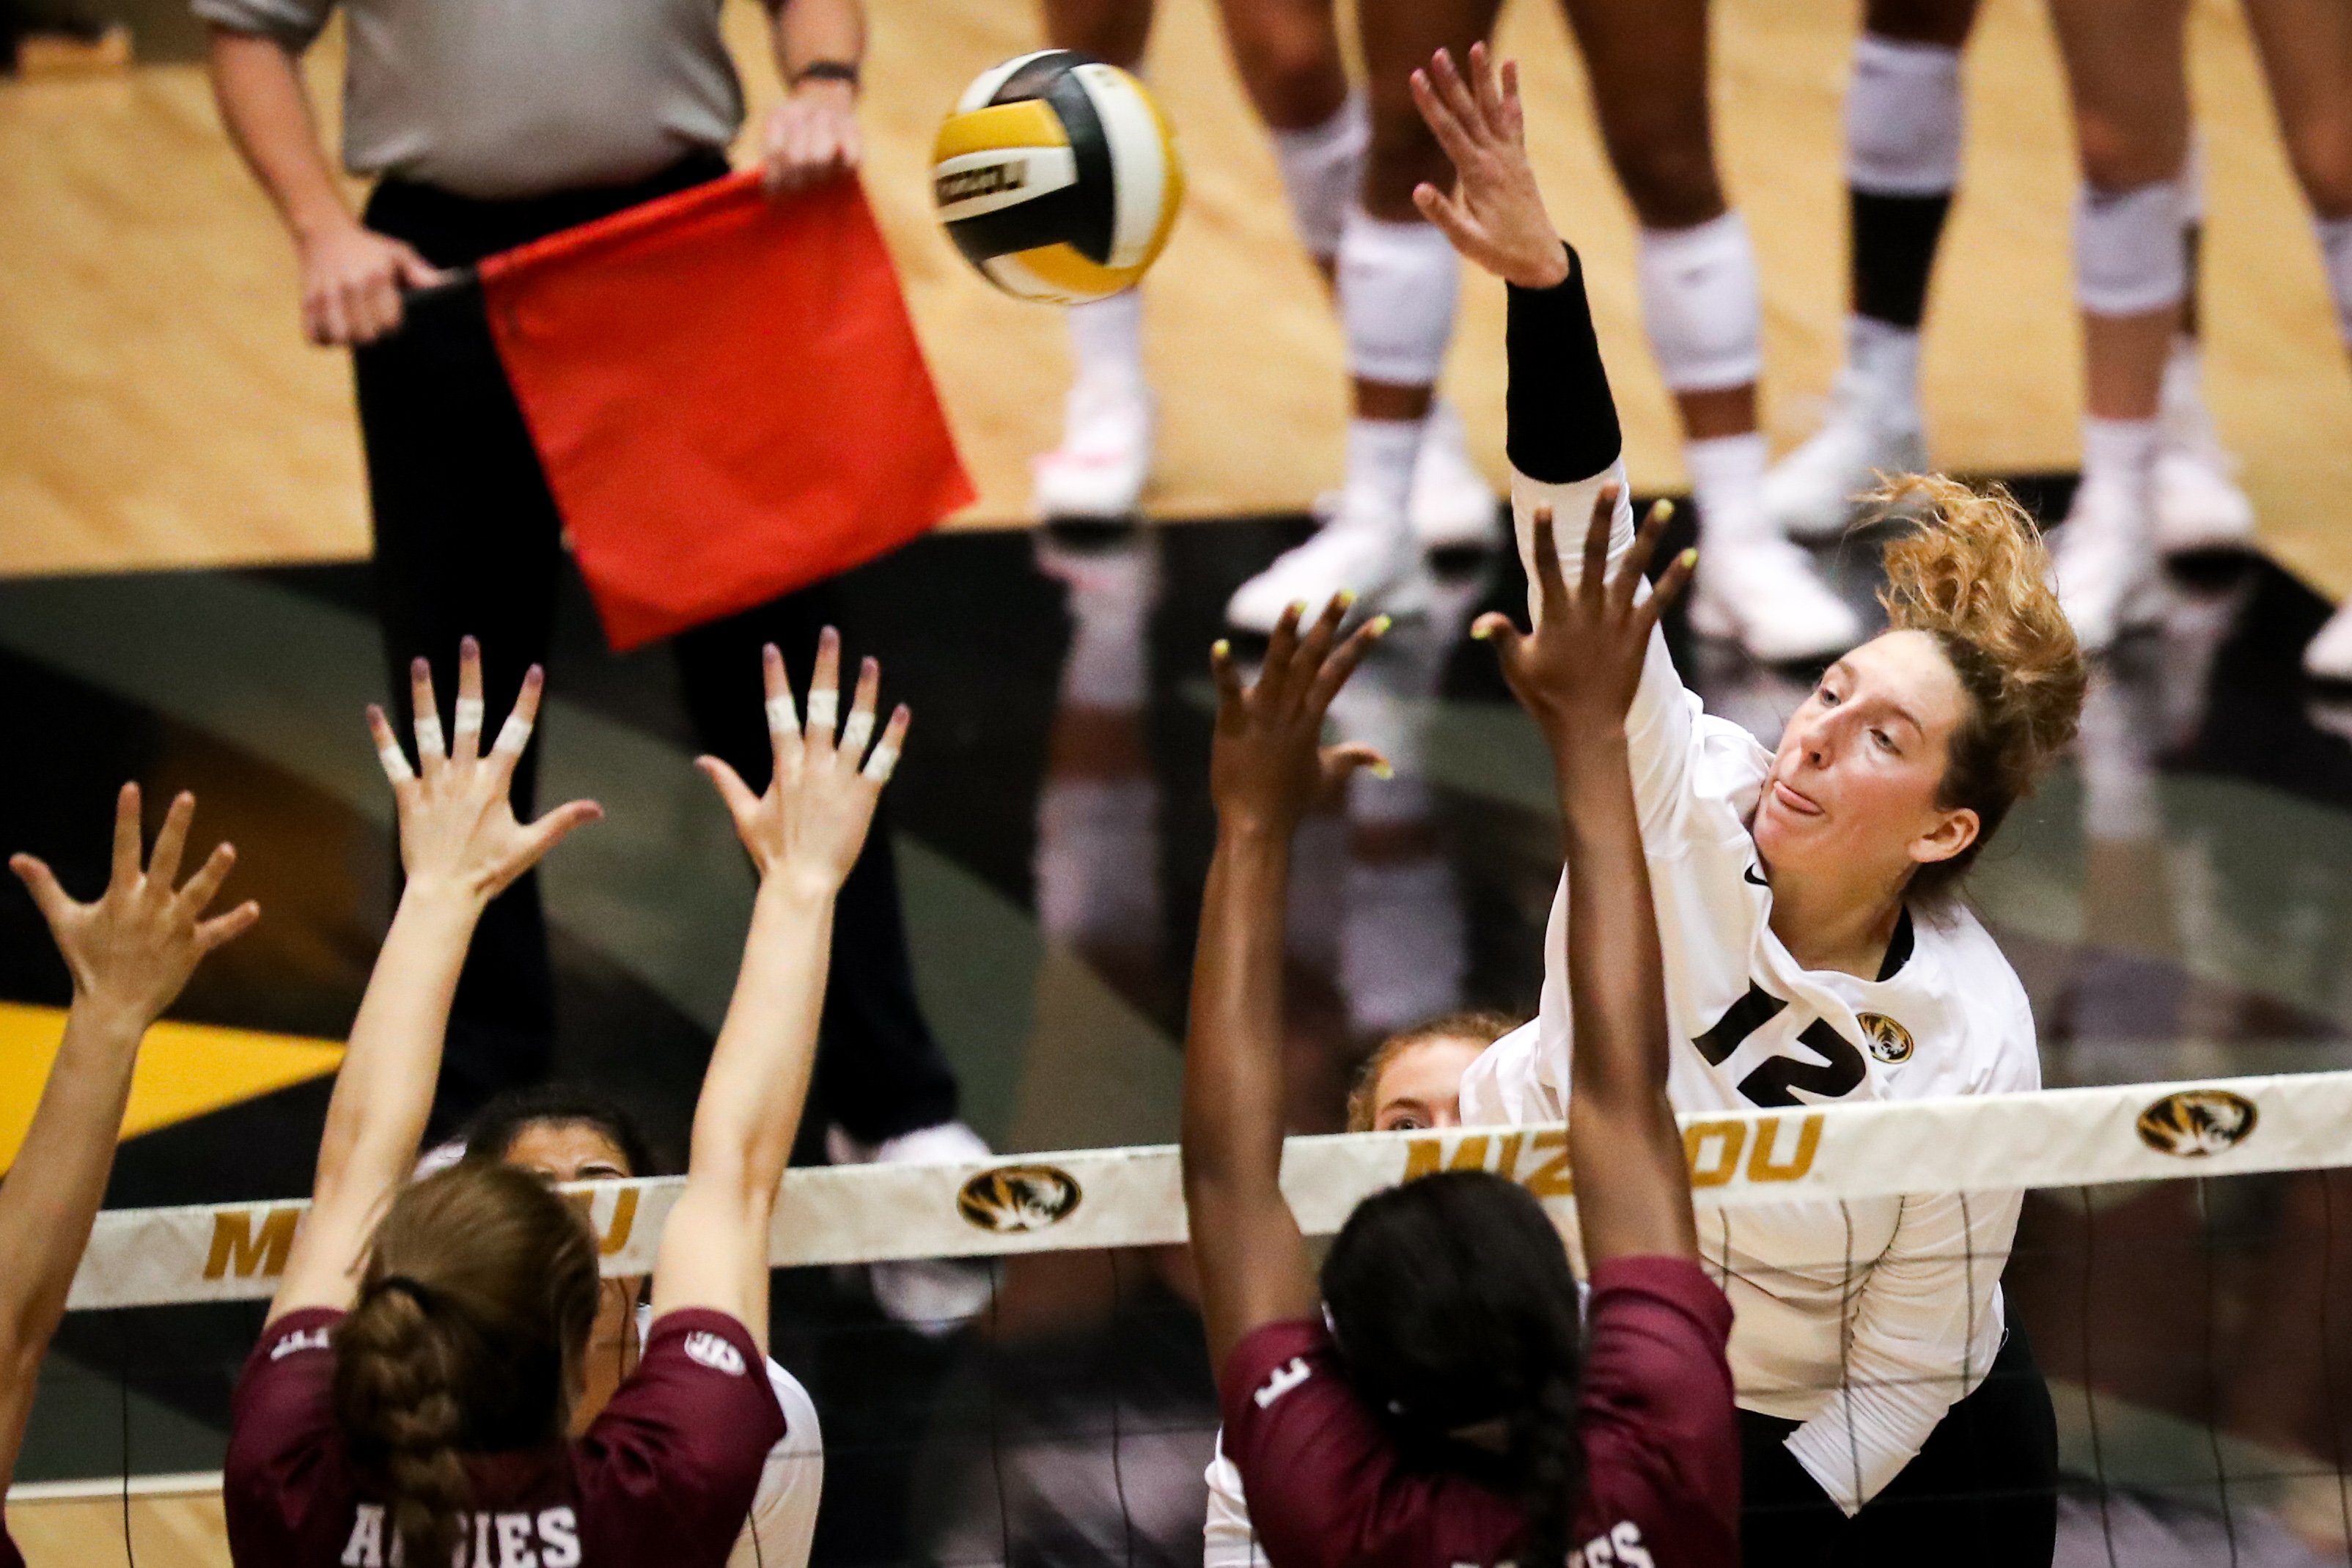 Mizzou Volleyball S Deberg Named Sec Overall And Offensive Player Of The Week University Of Missouri Athletics